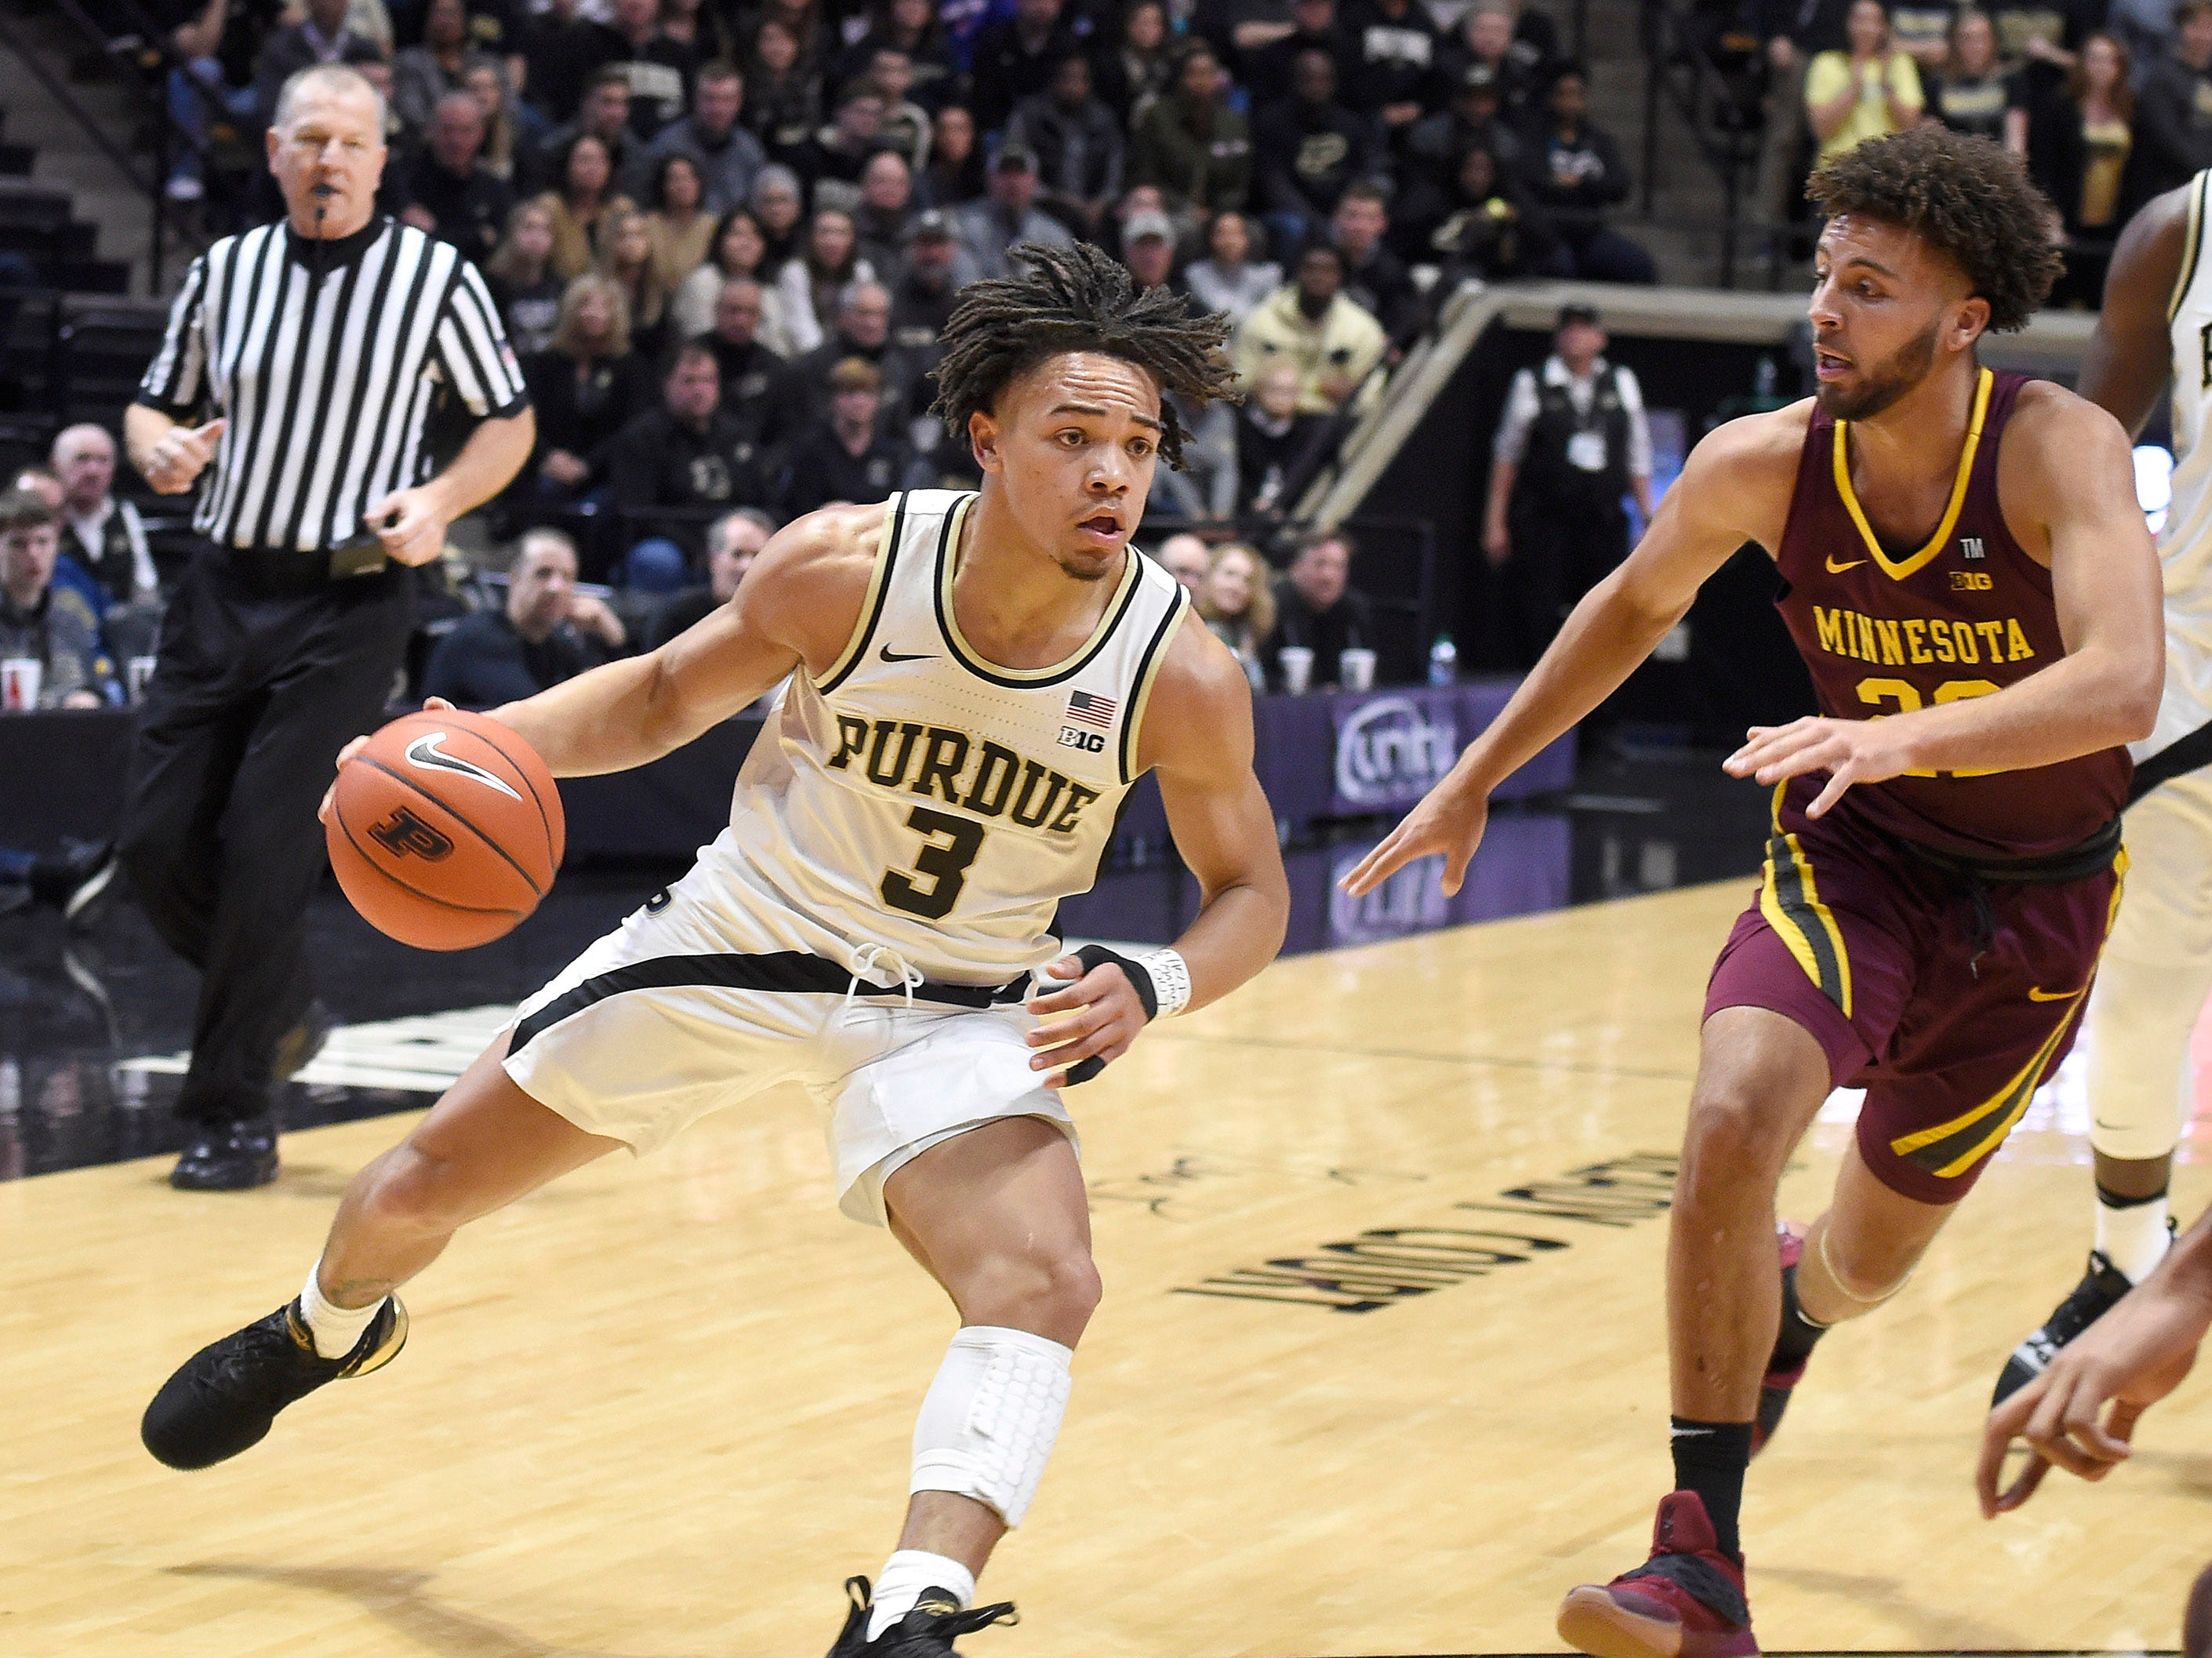 Feb 3, 2019; West Lafayette, IN, USA; Purdue Boilermakers guard Carsen Edwards (3) dribbles the ball around Minnesota Golden Gophers guard Gabe Kalscheur (22) in the first half at Mackey Arena. Mandatory Credit: Sandra Dukes-USA TODAY Sports